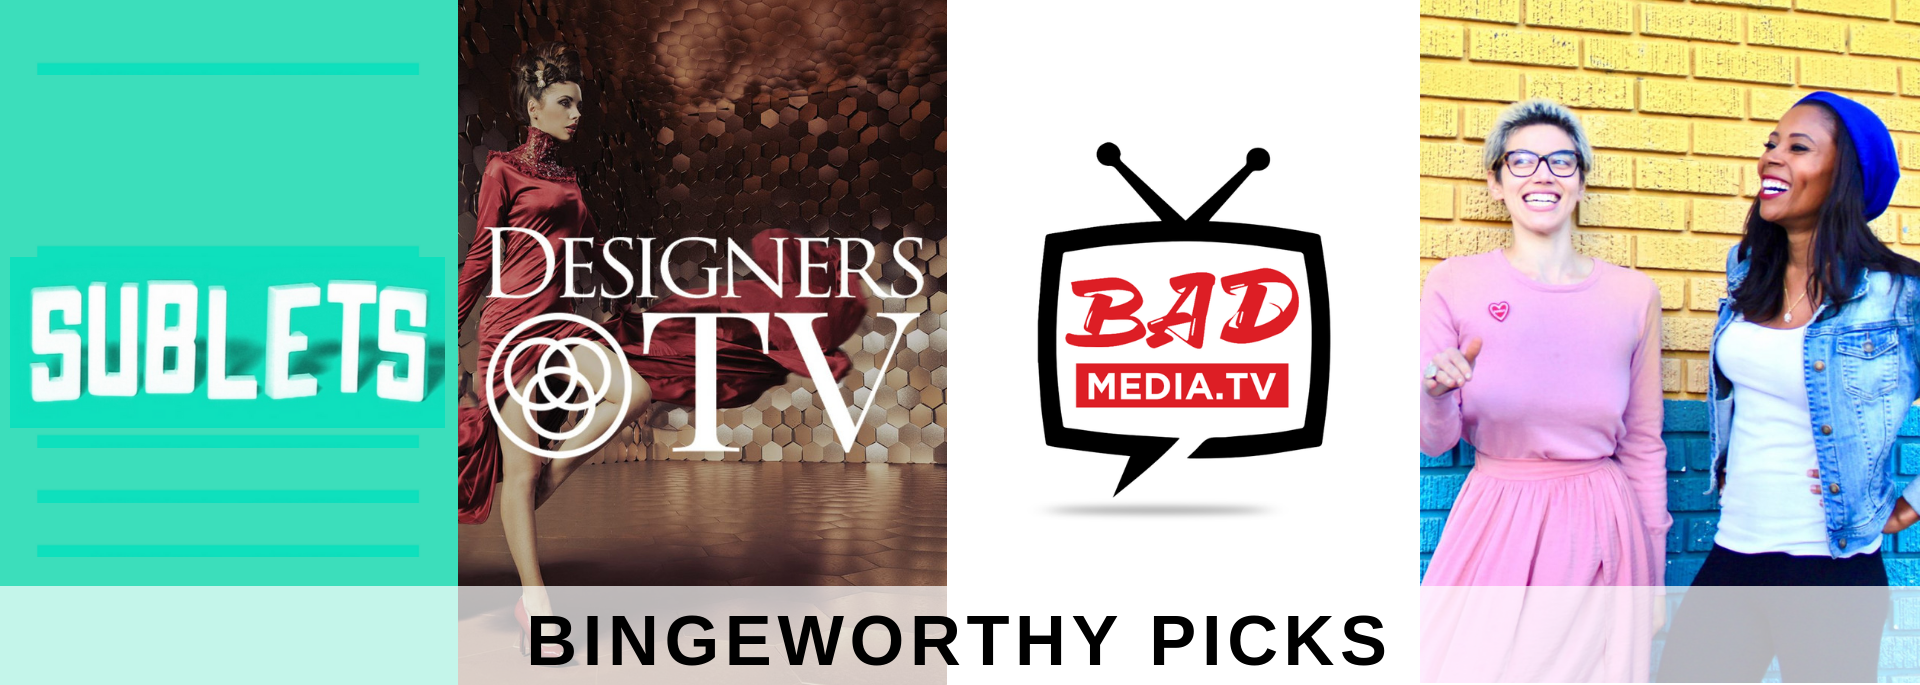 BINGEWORTHY PICKS